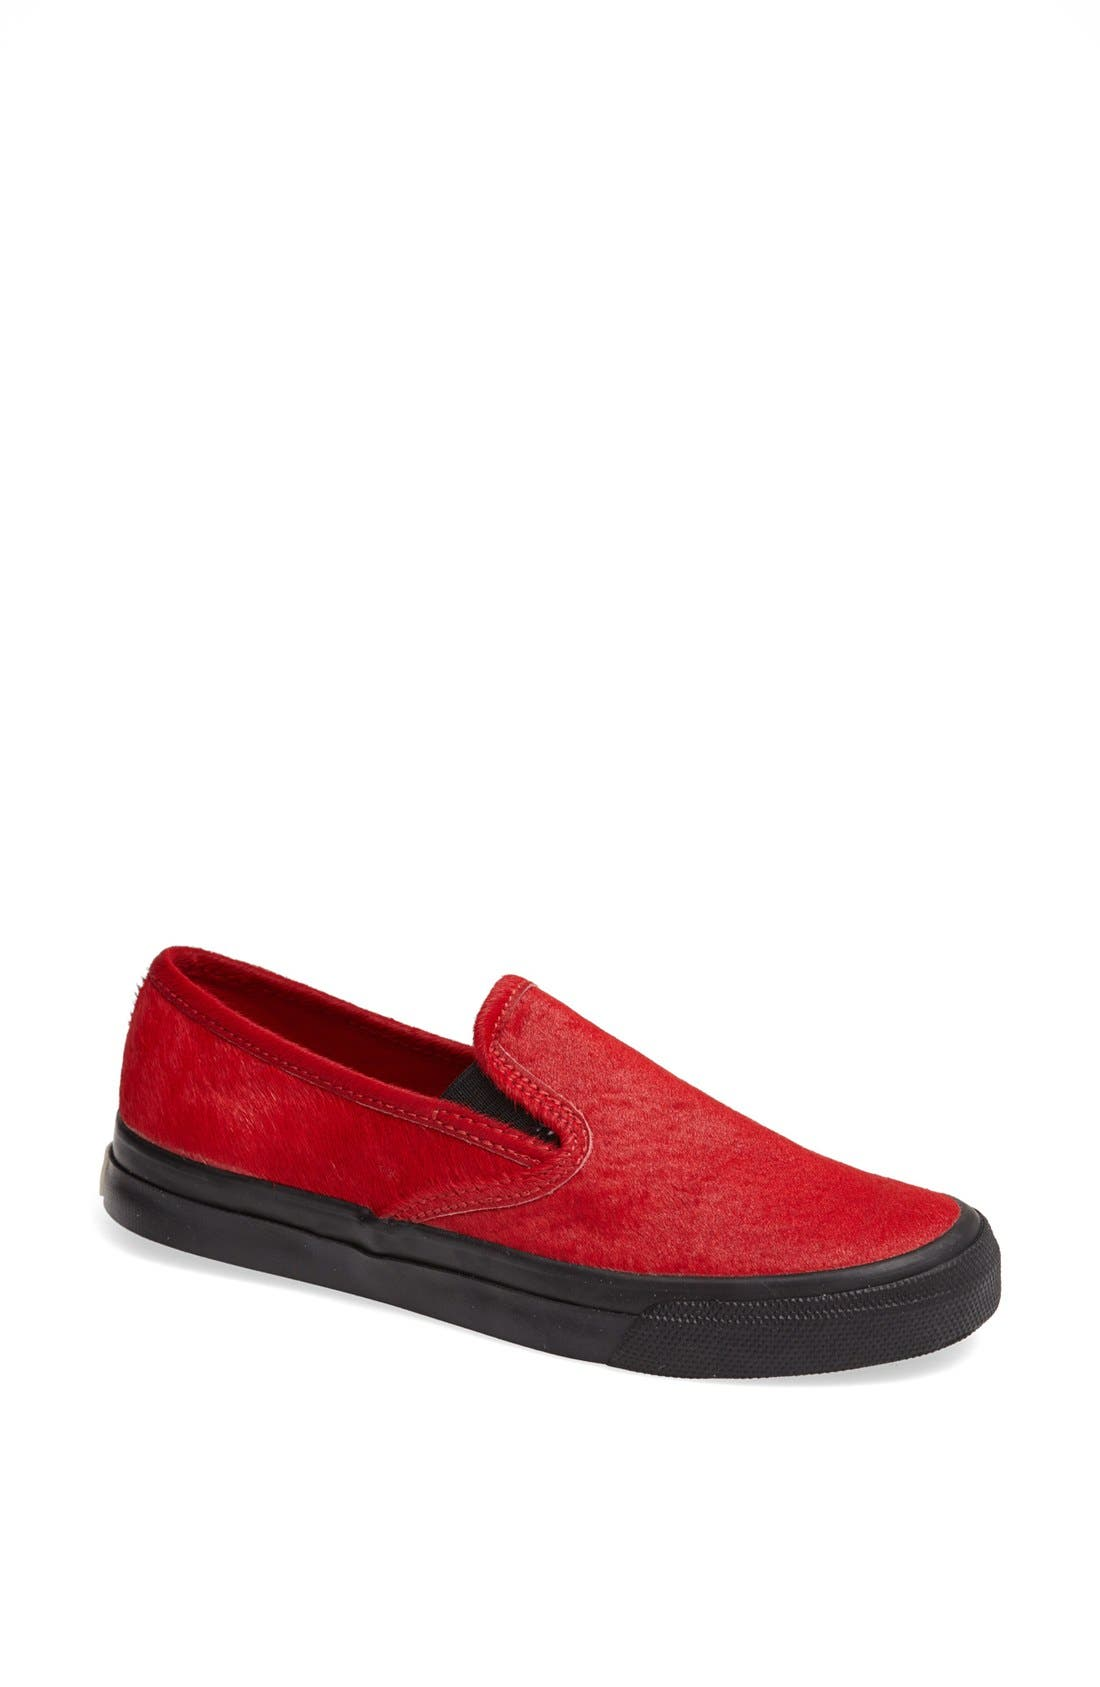 Main Image - Sperry for Jeffrey 'CVO' Slip-On